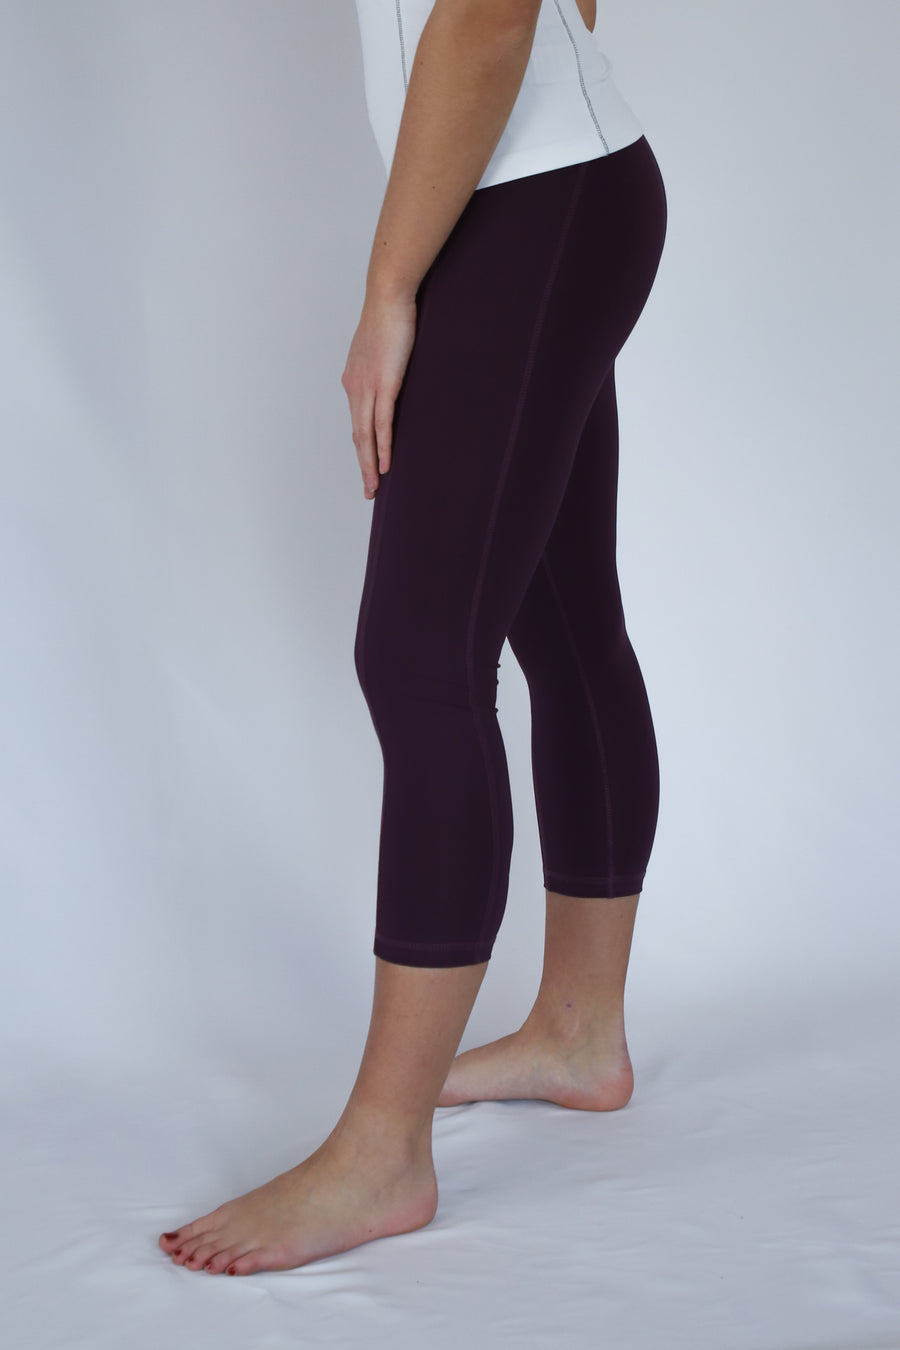 Capri Pants Polly red purple